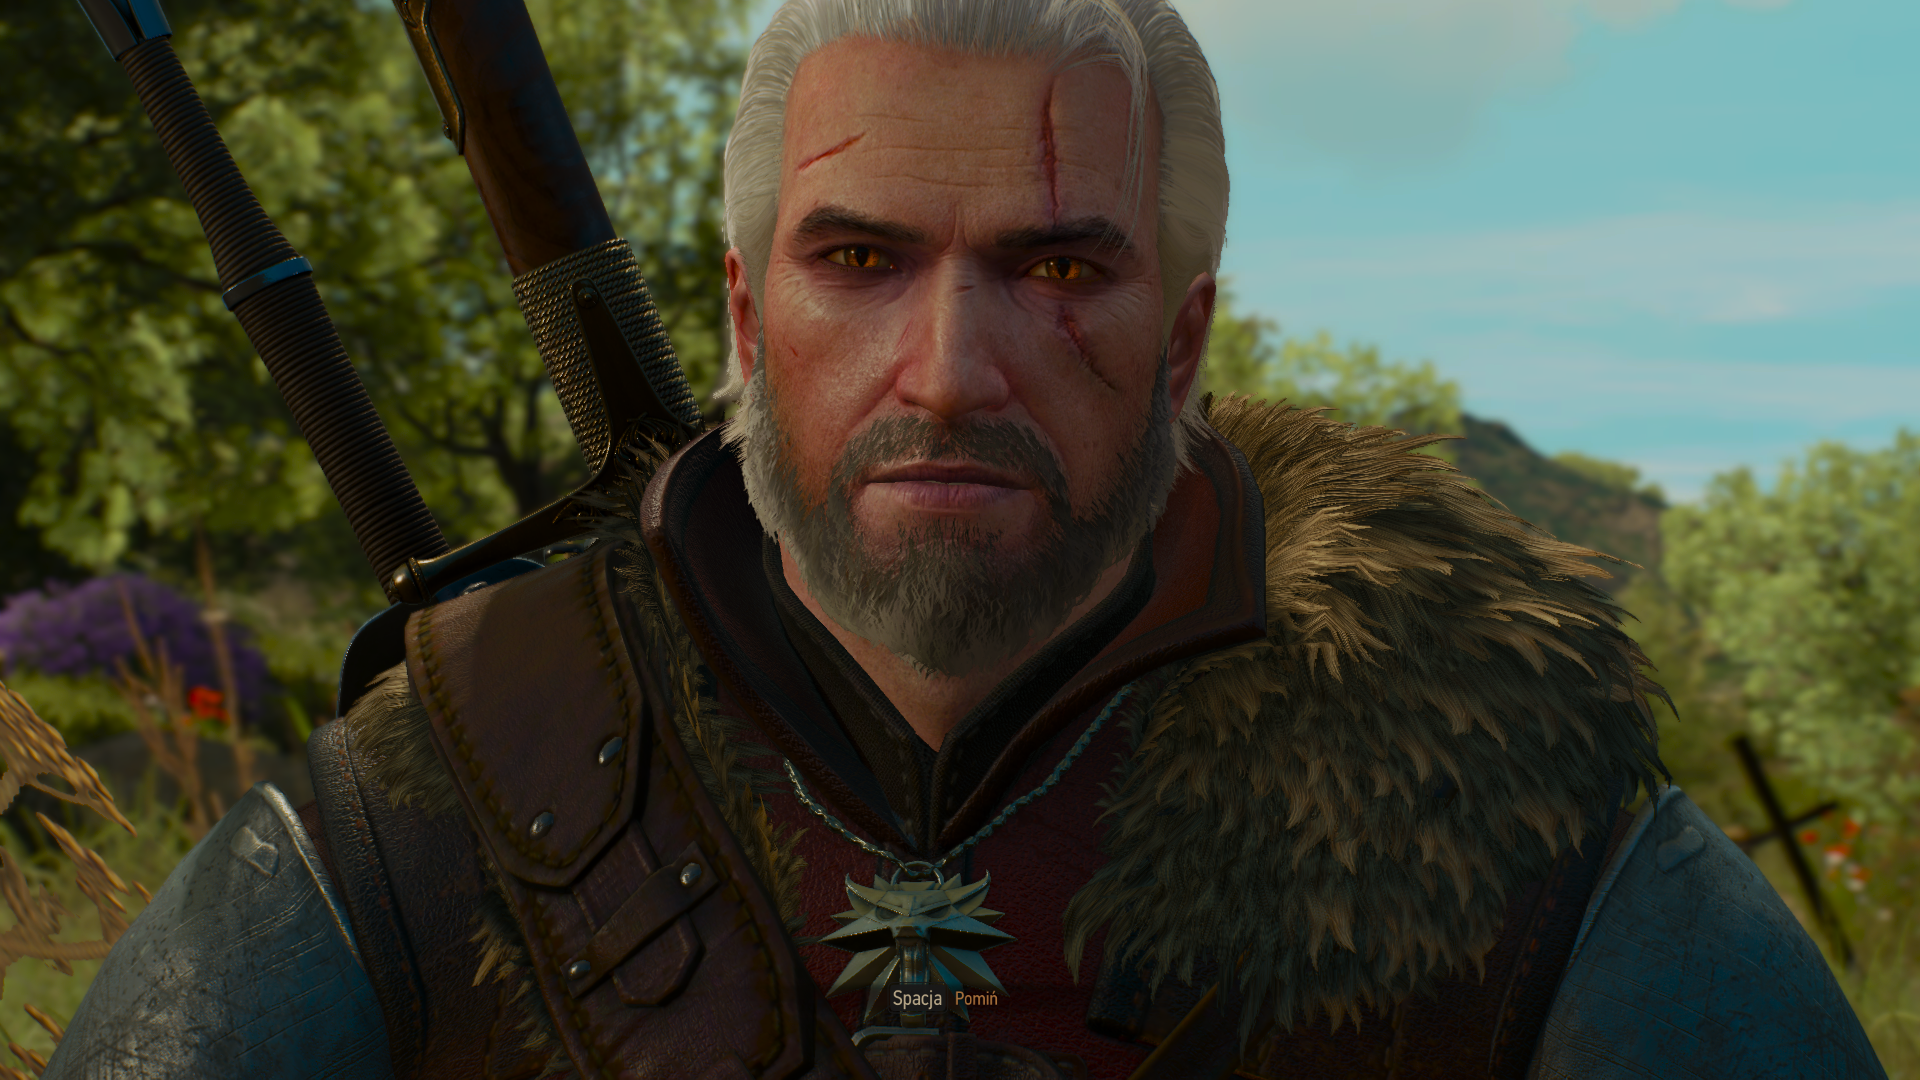 The Witcher 3 27.12.2018 22_46_29.png - Witcher 3: Wild Hunt, the